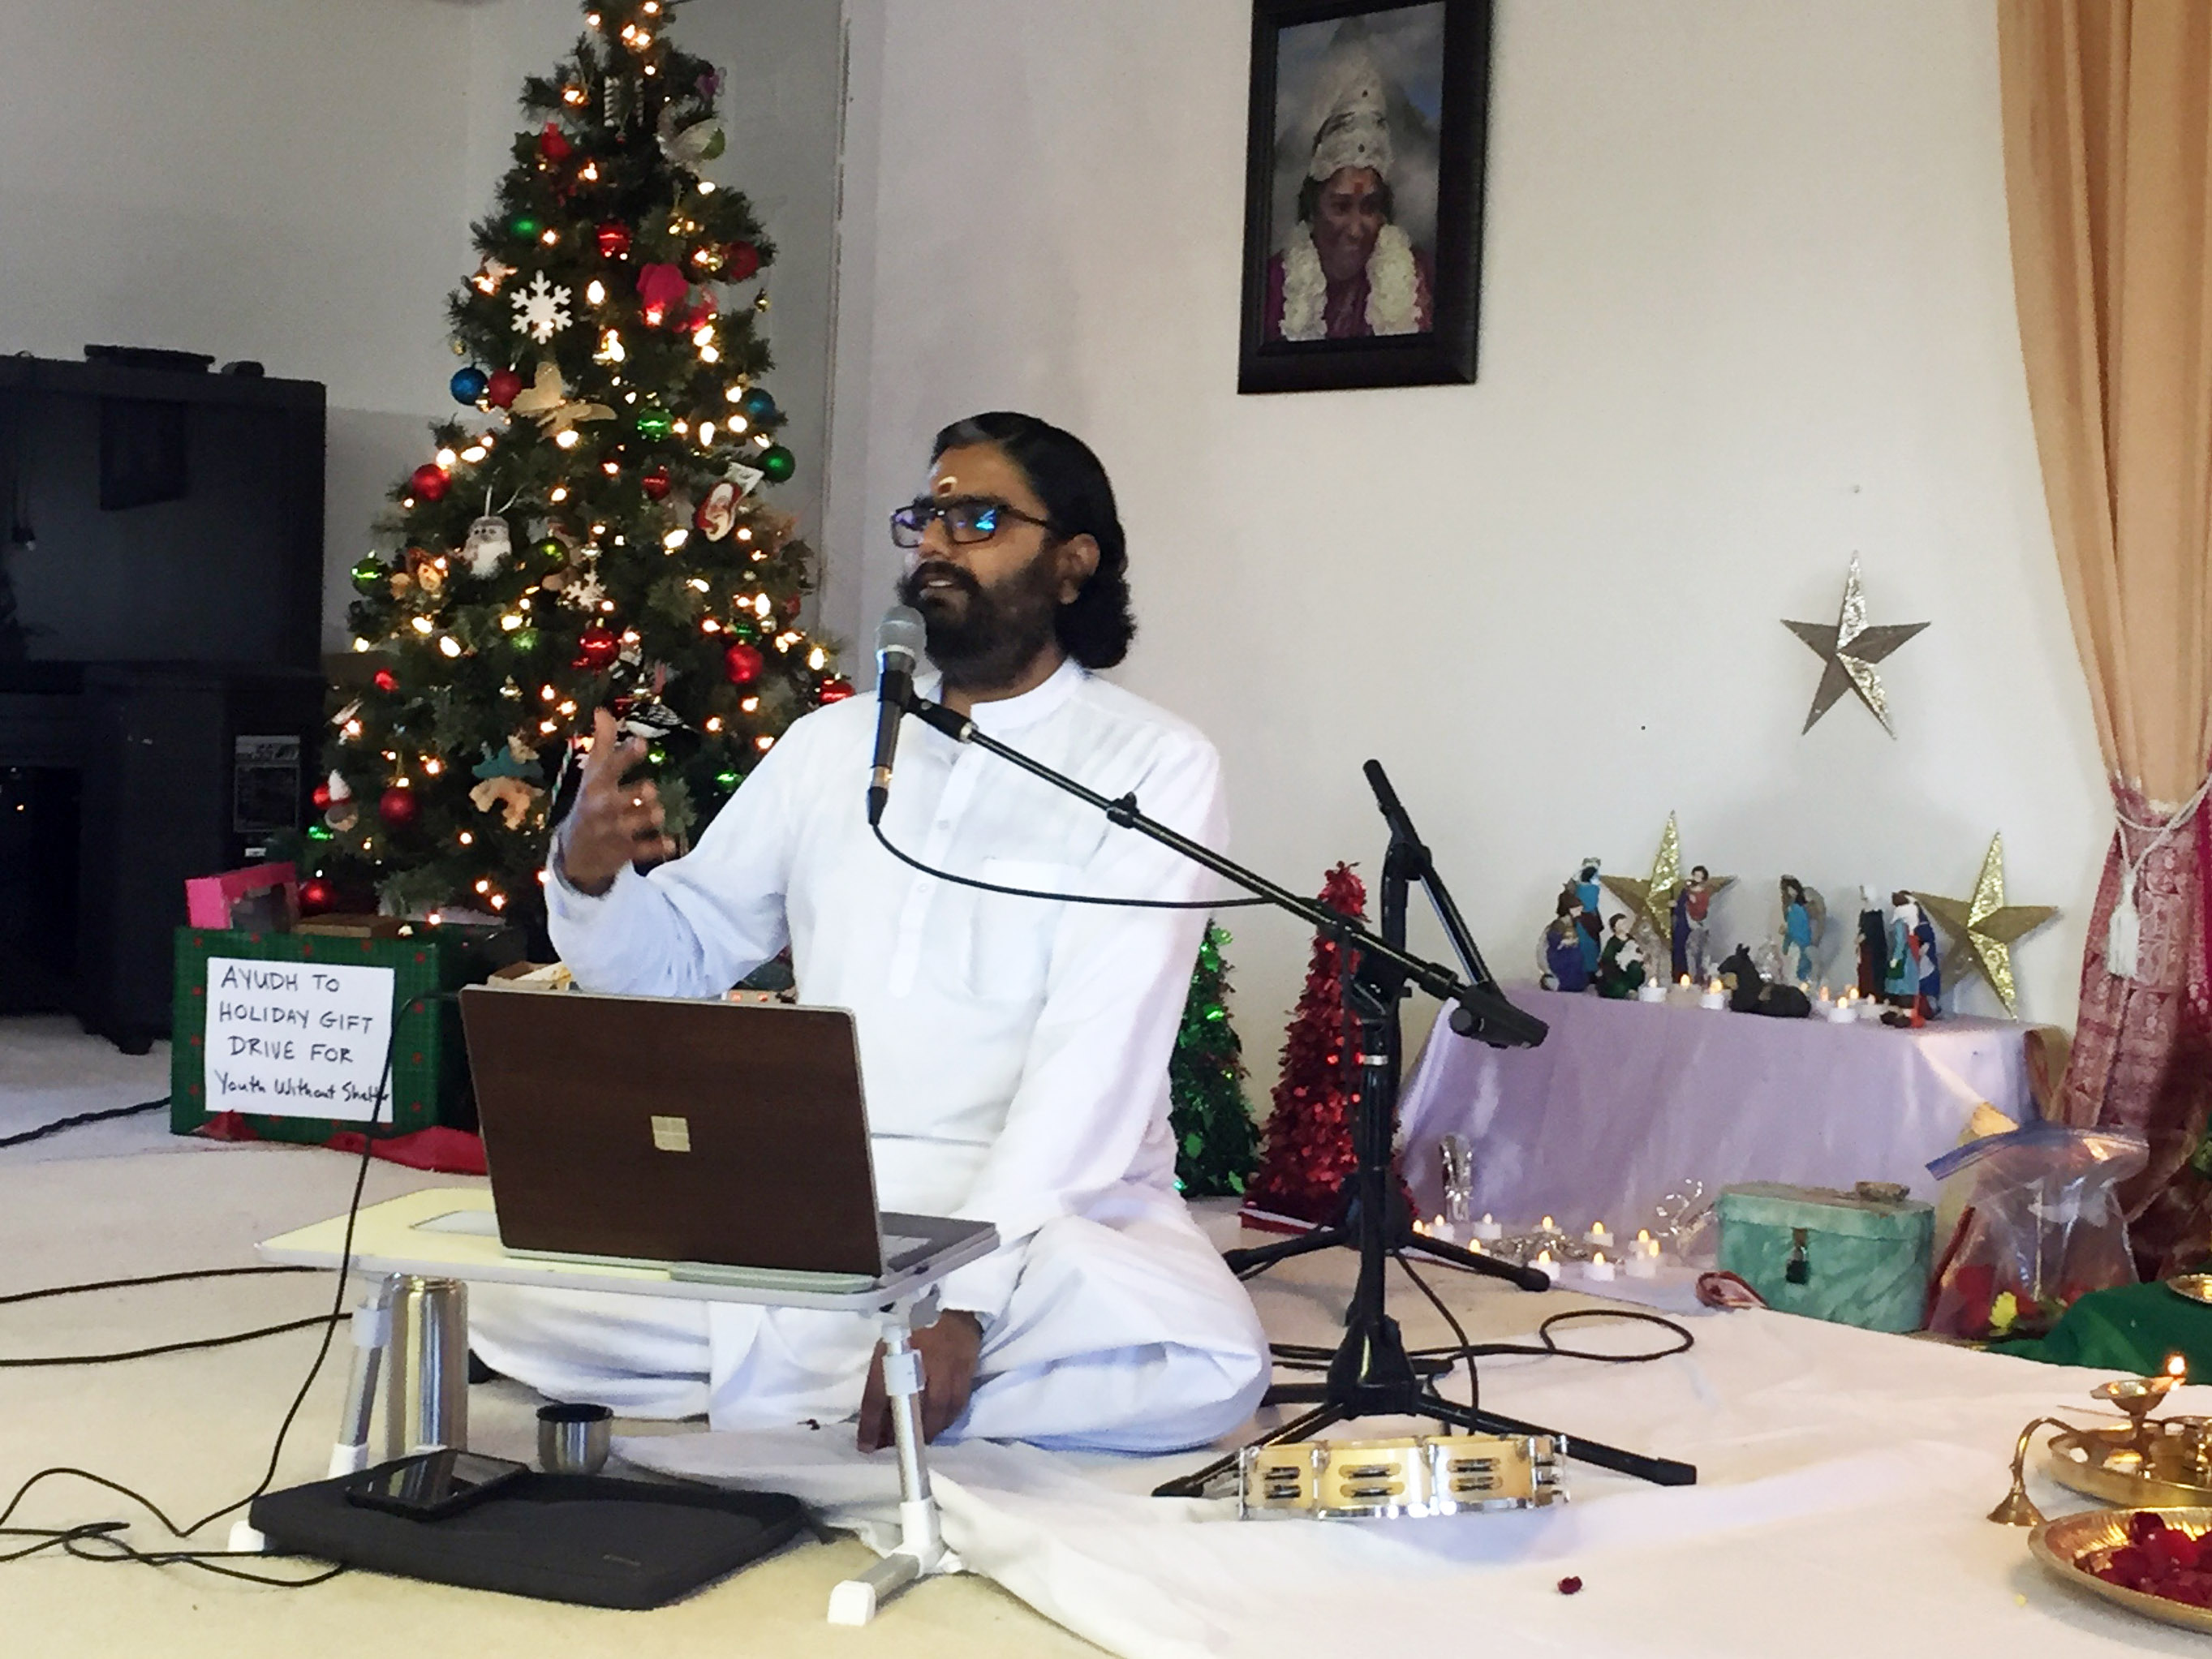 Br Ramanand gesturing and speaking at the mic